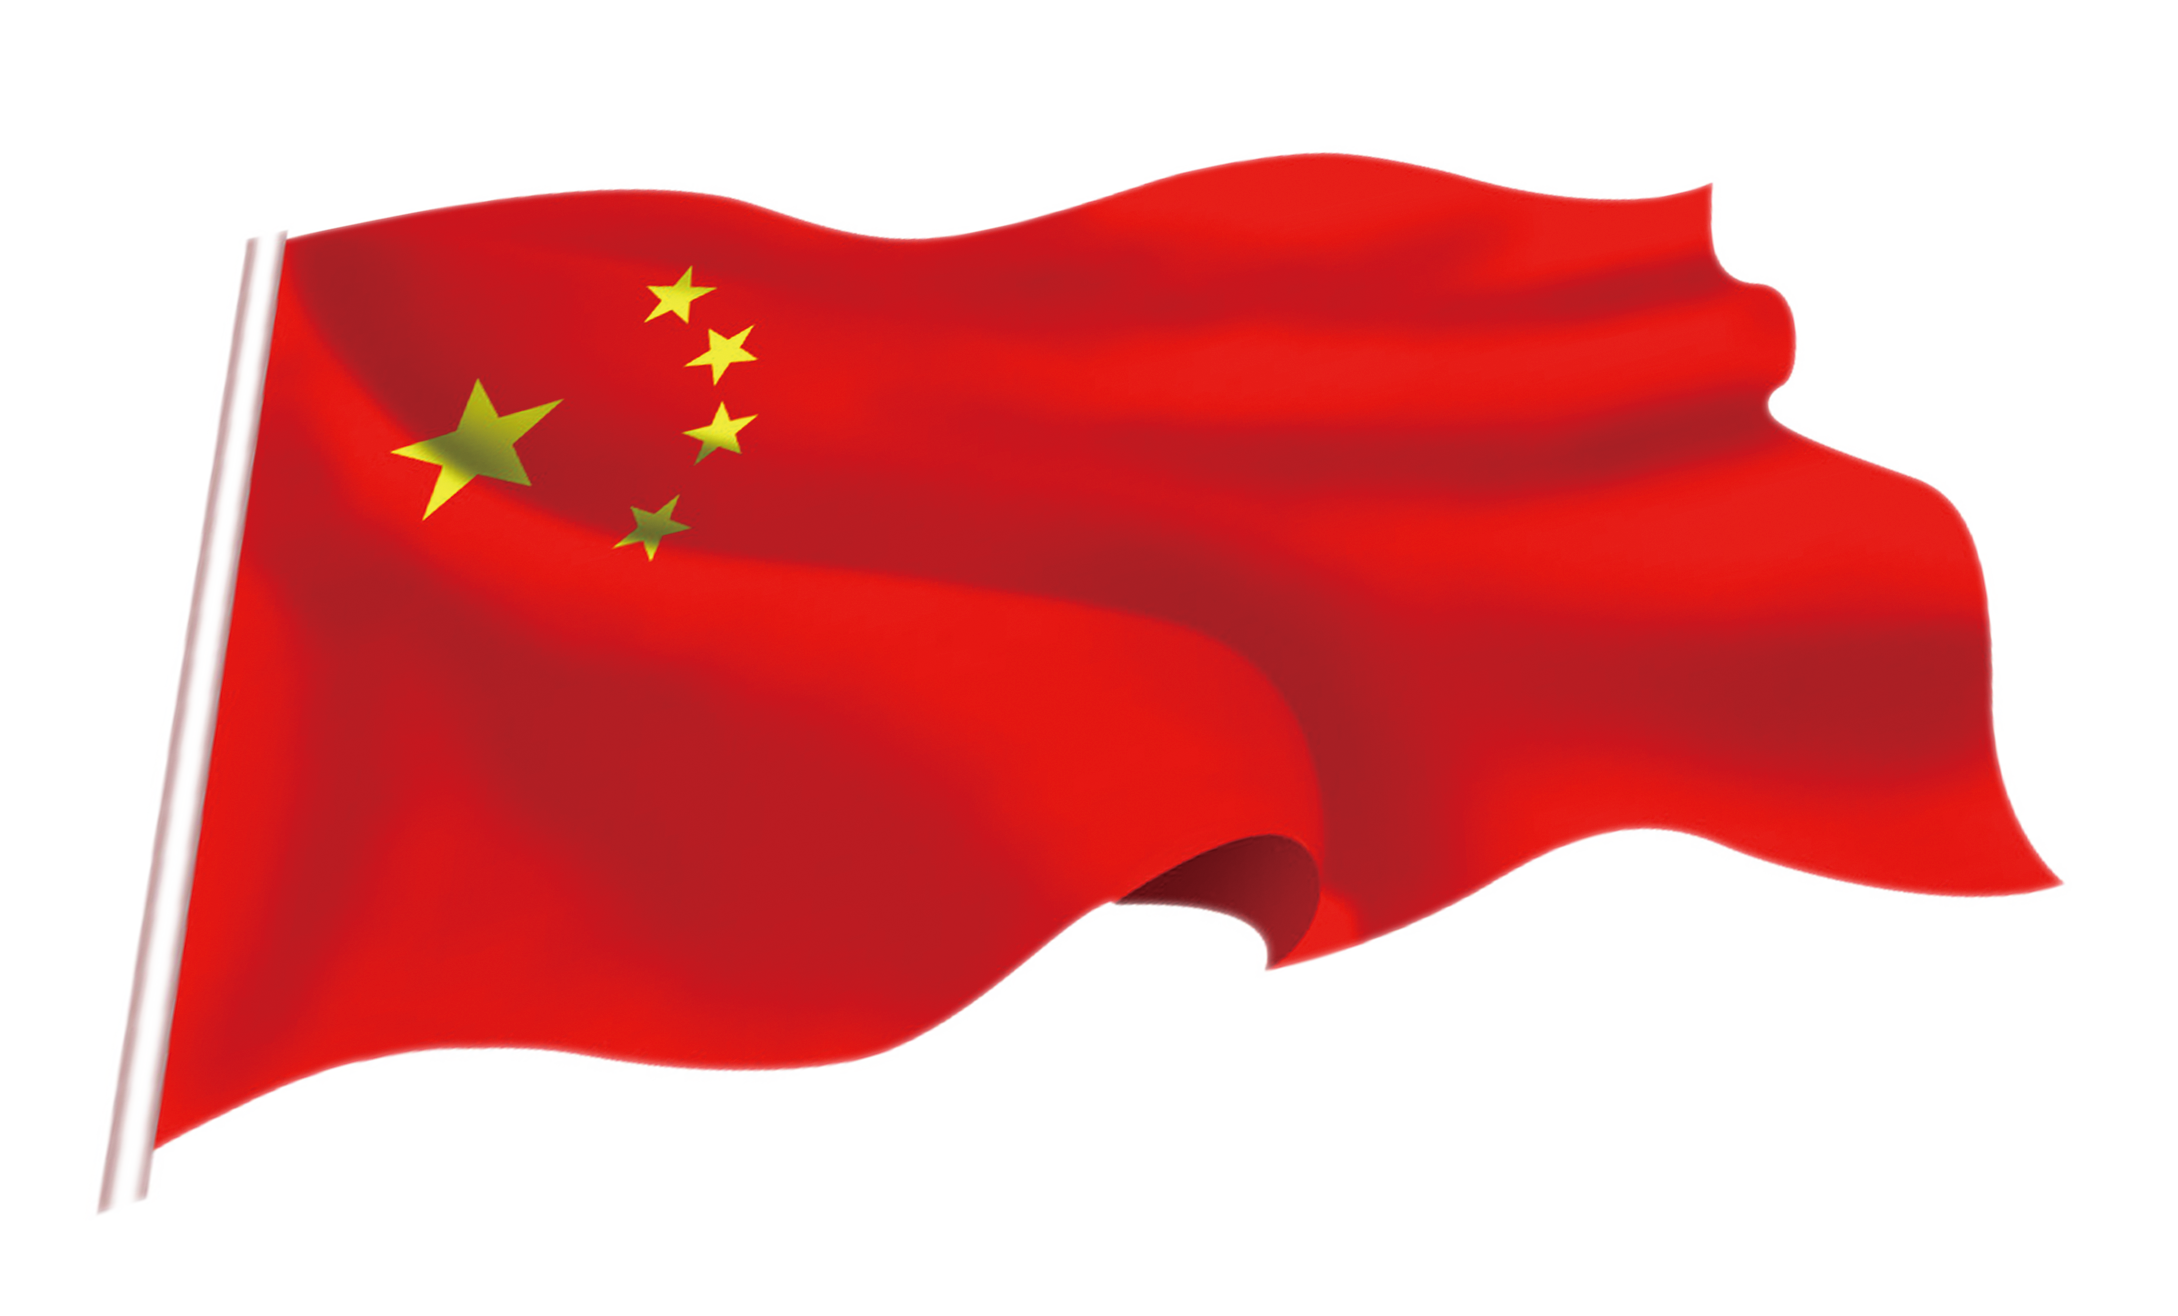 19th National Congress of the Communist Party of China Flag.